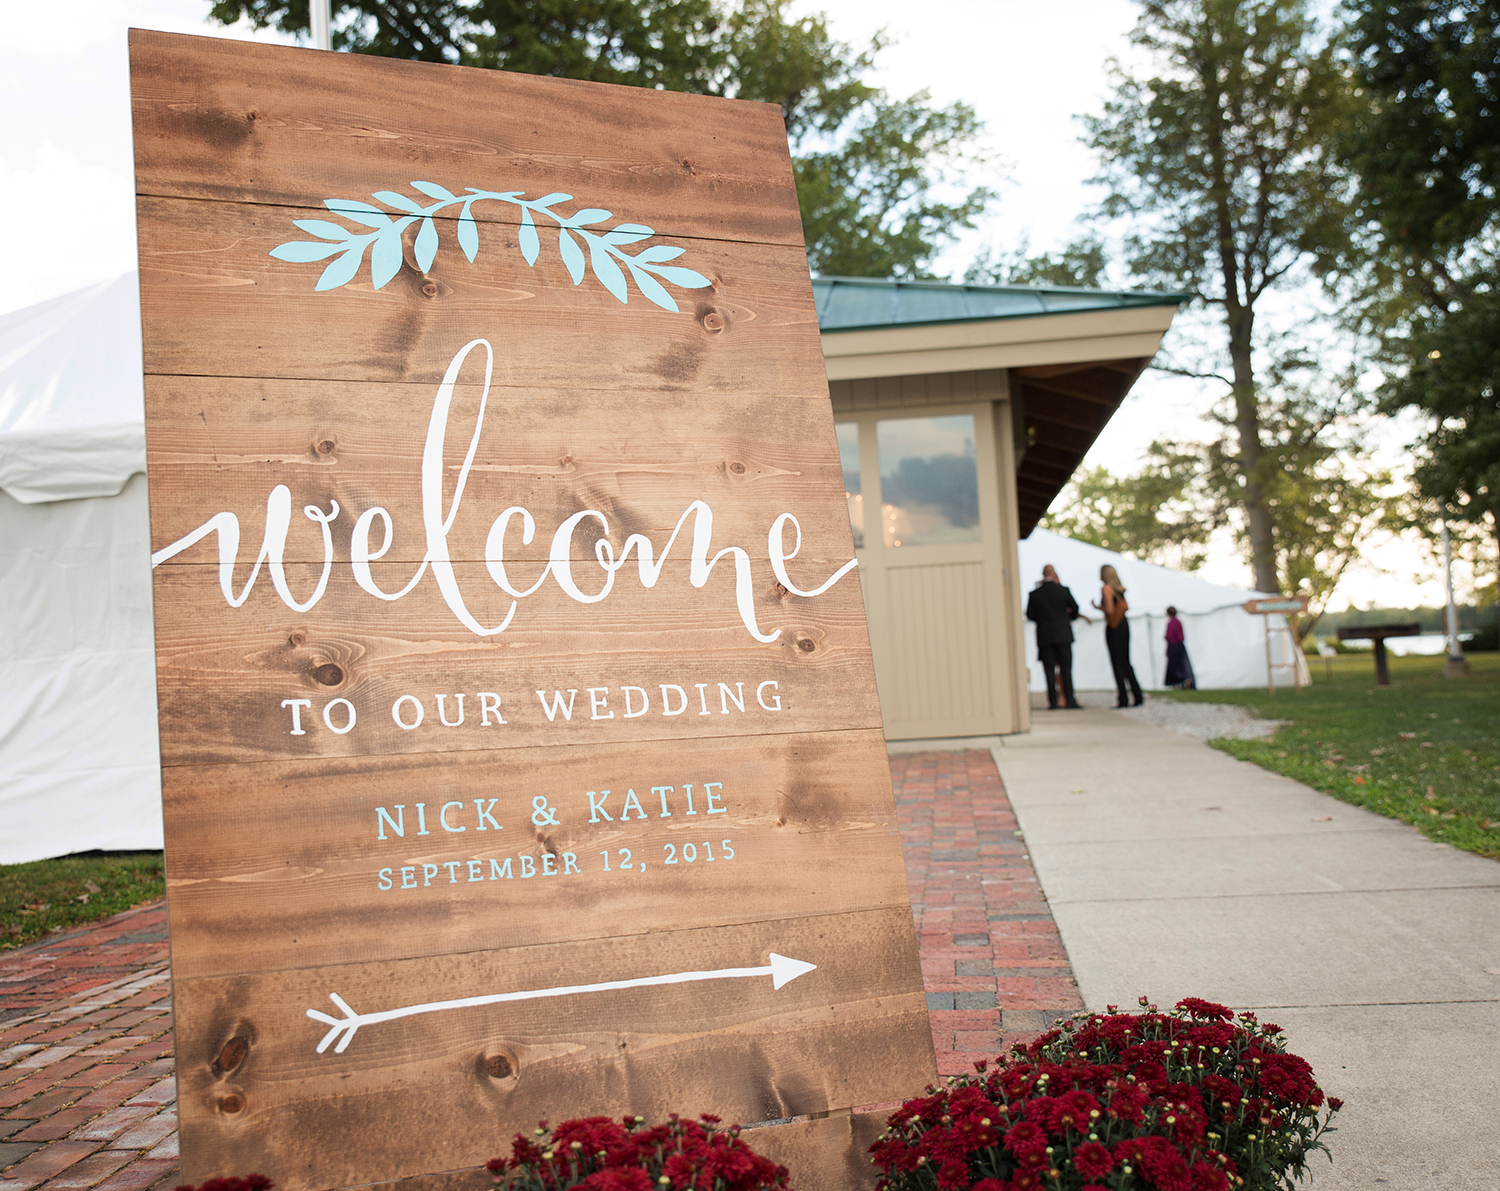 Minster Ohio, Ft Loramie Ohio, Earl's Island Pavilion, rustic wedding details, rustic wedding reception, rustic wedding